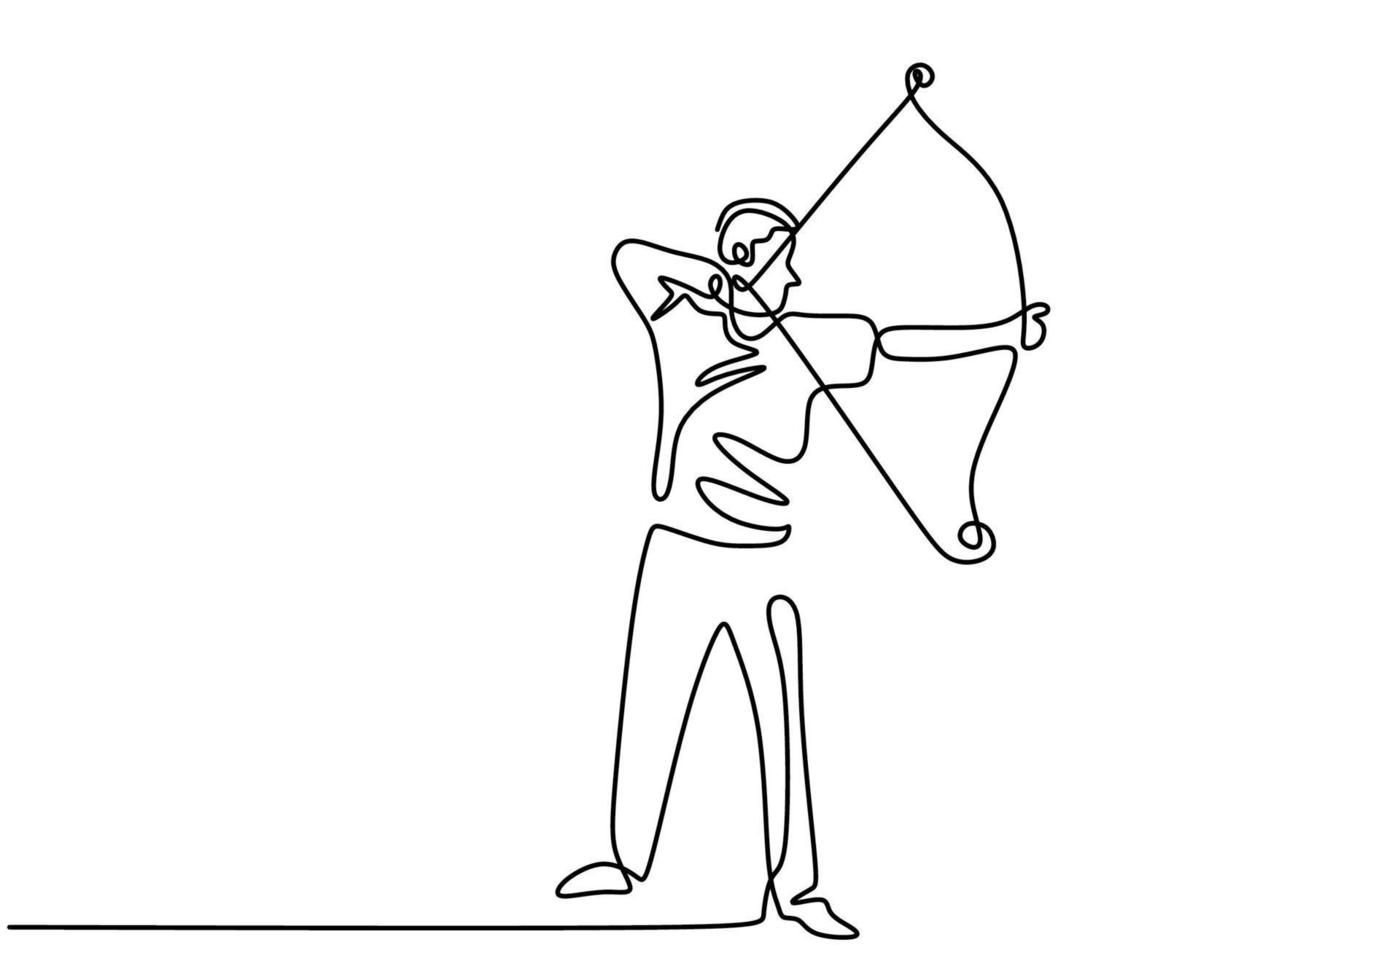 Continuous line drawing of young professional archer man, standing and focus to shooting the target. Healthy refresh shooting with bow. Archery sport theme isolated on white background vector